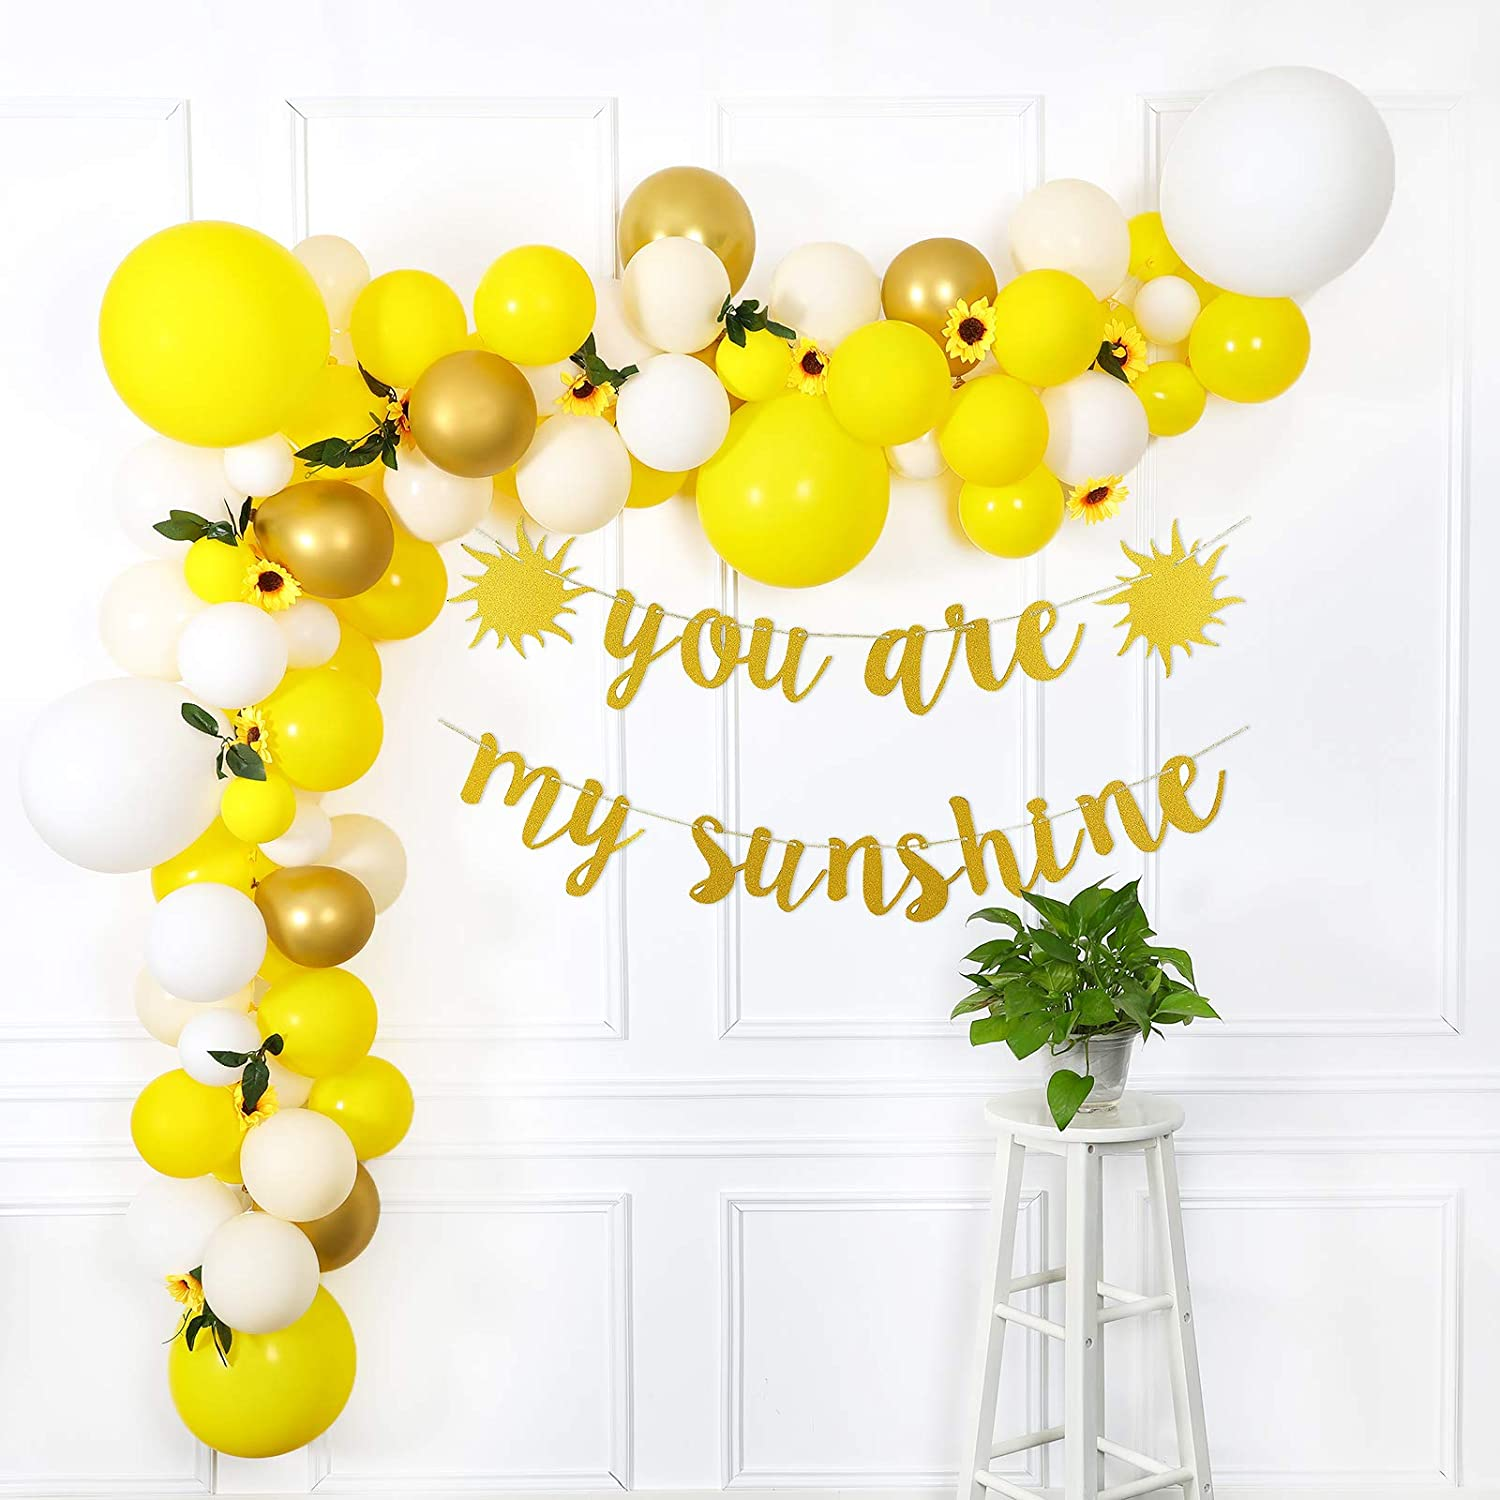 Sunflower Party Decorations, Sunflower Balloon Garland Arch Kit with Your Are My Sunshine Banner for Sunflower Theme Baby Shower Decorations, Birthday Party Decorations for Girl, Bridal Shower, Wedding